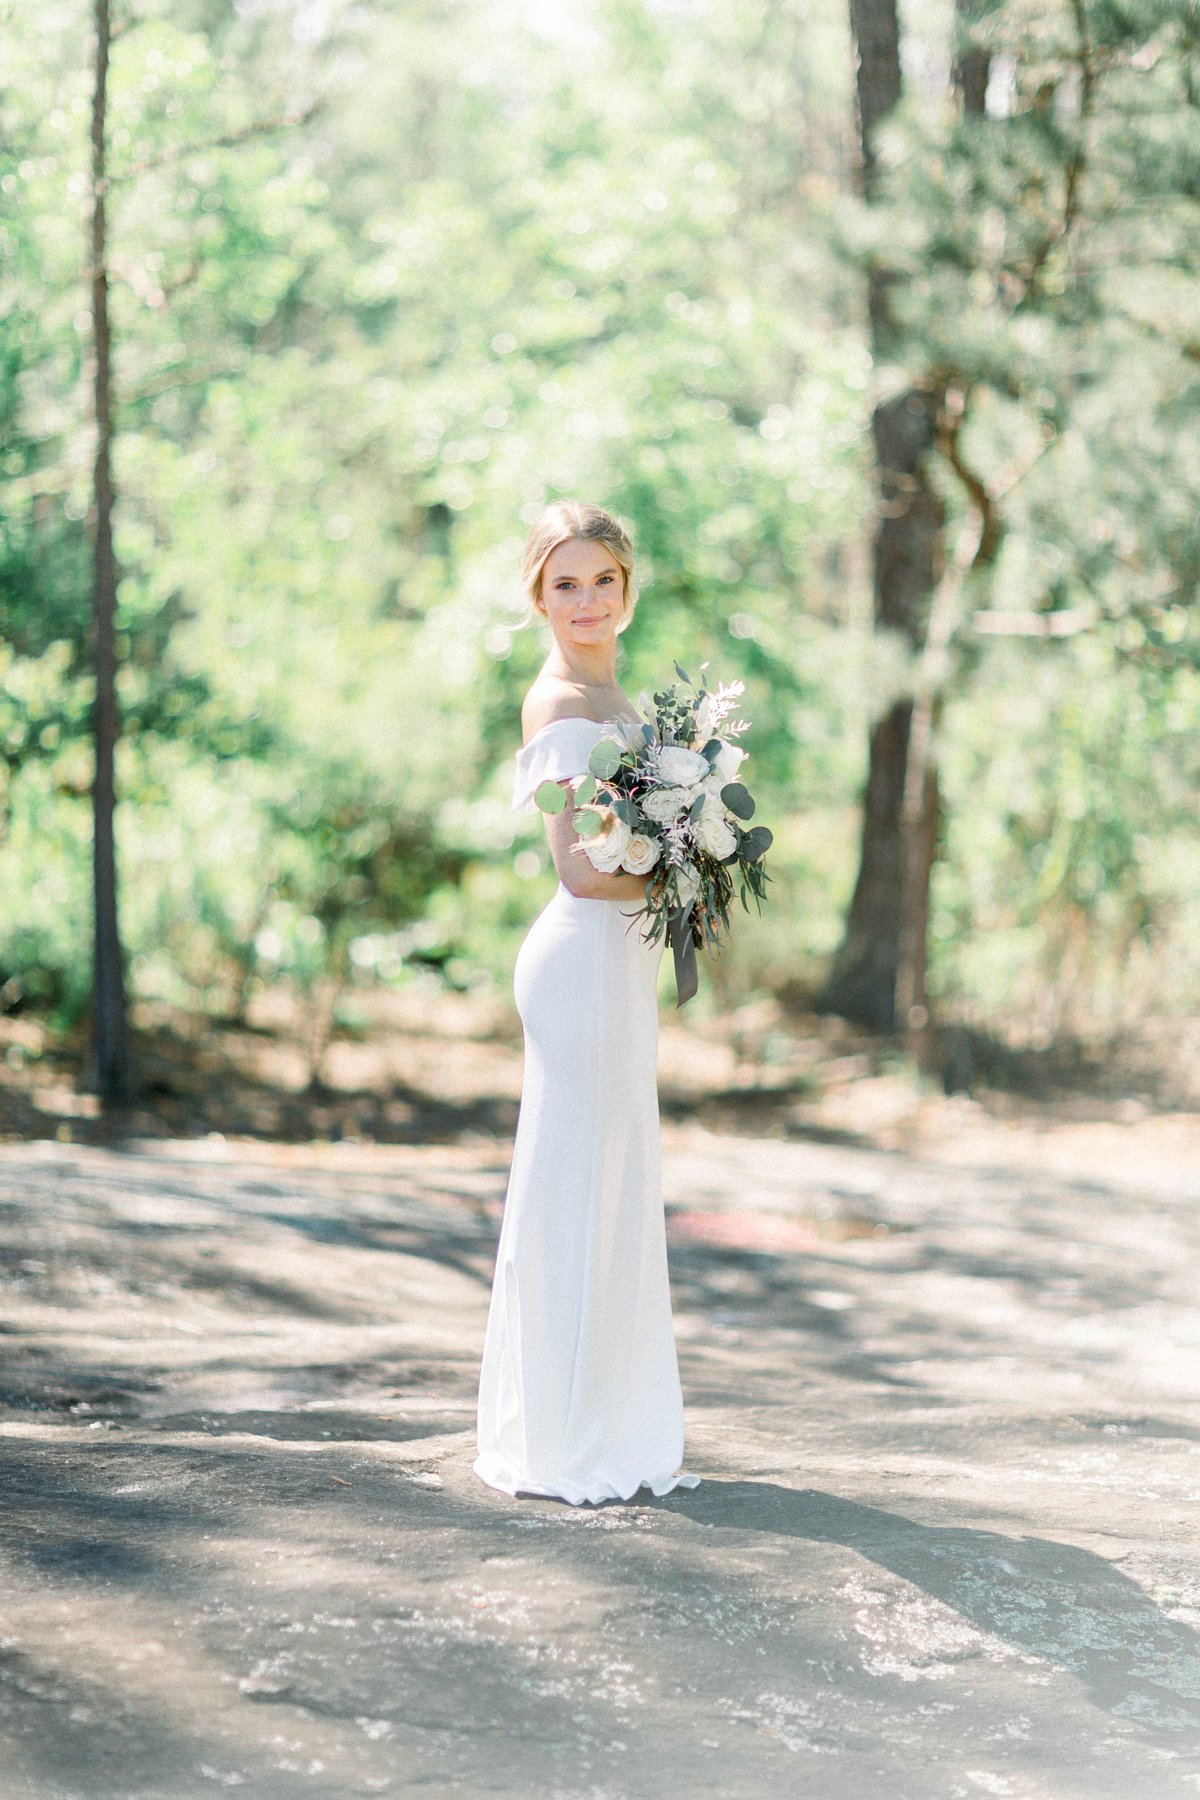 Lizzie Baker Photo _ Atlanta Wedding Photographer _ Atlanta Engagement Photographer _ Biltmore Wedding Photographer _ Foxhall Wedding Photographer _ Yew Dell Wedding17